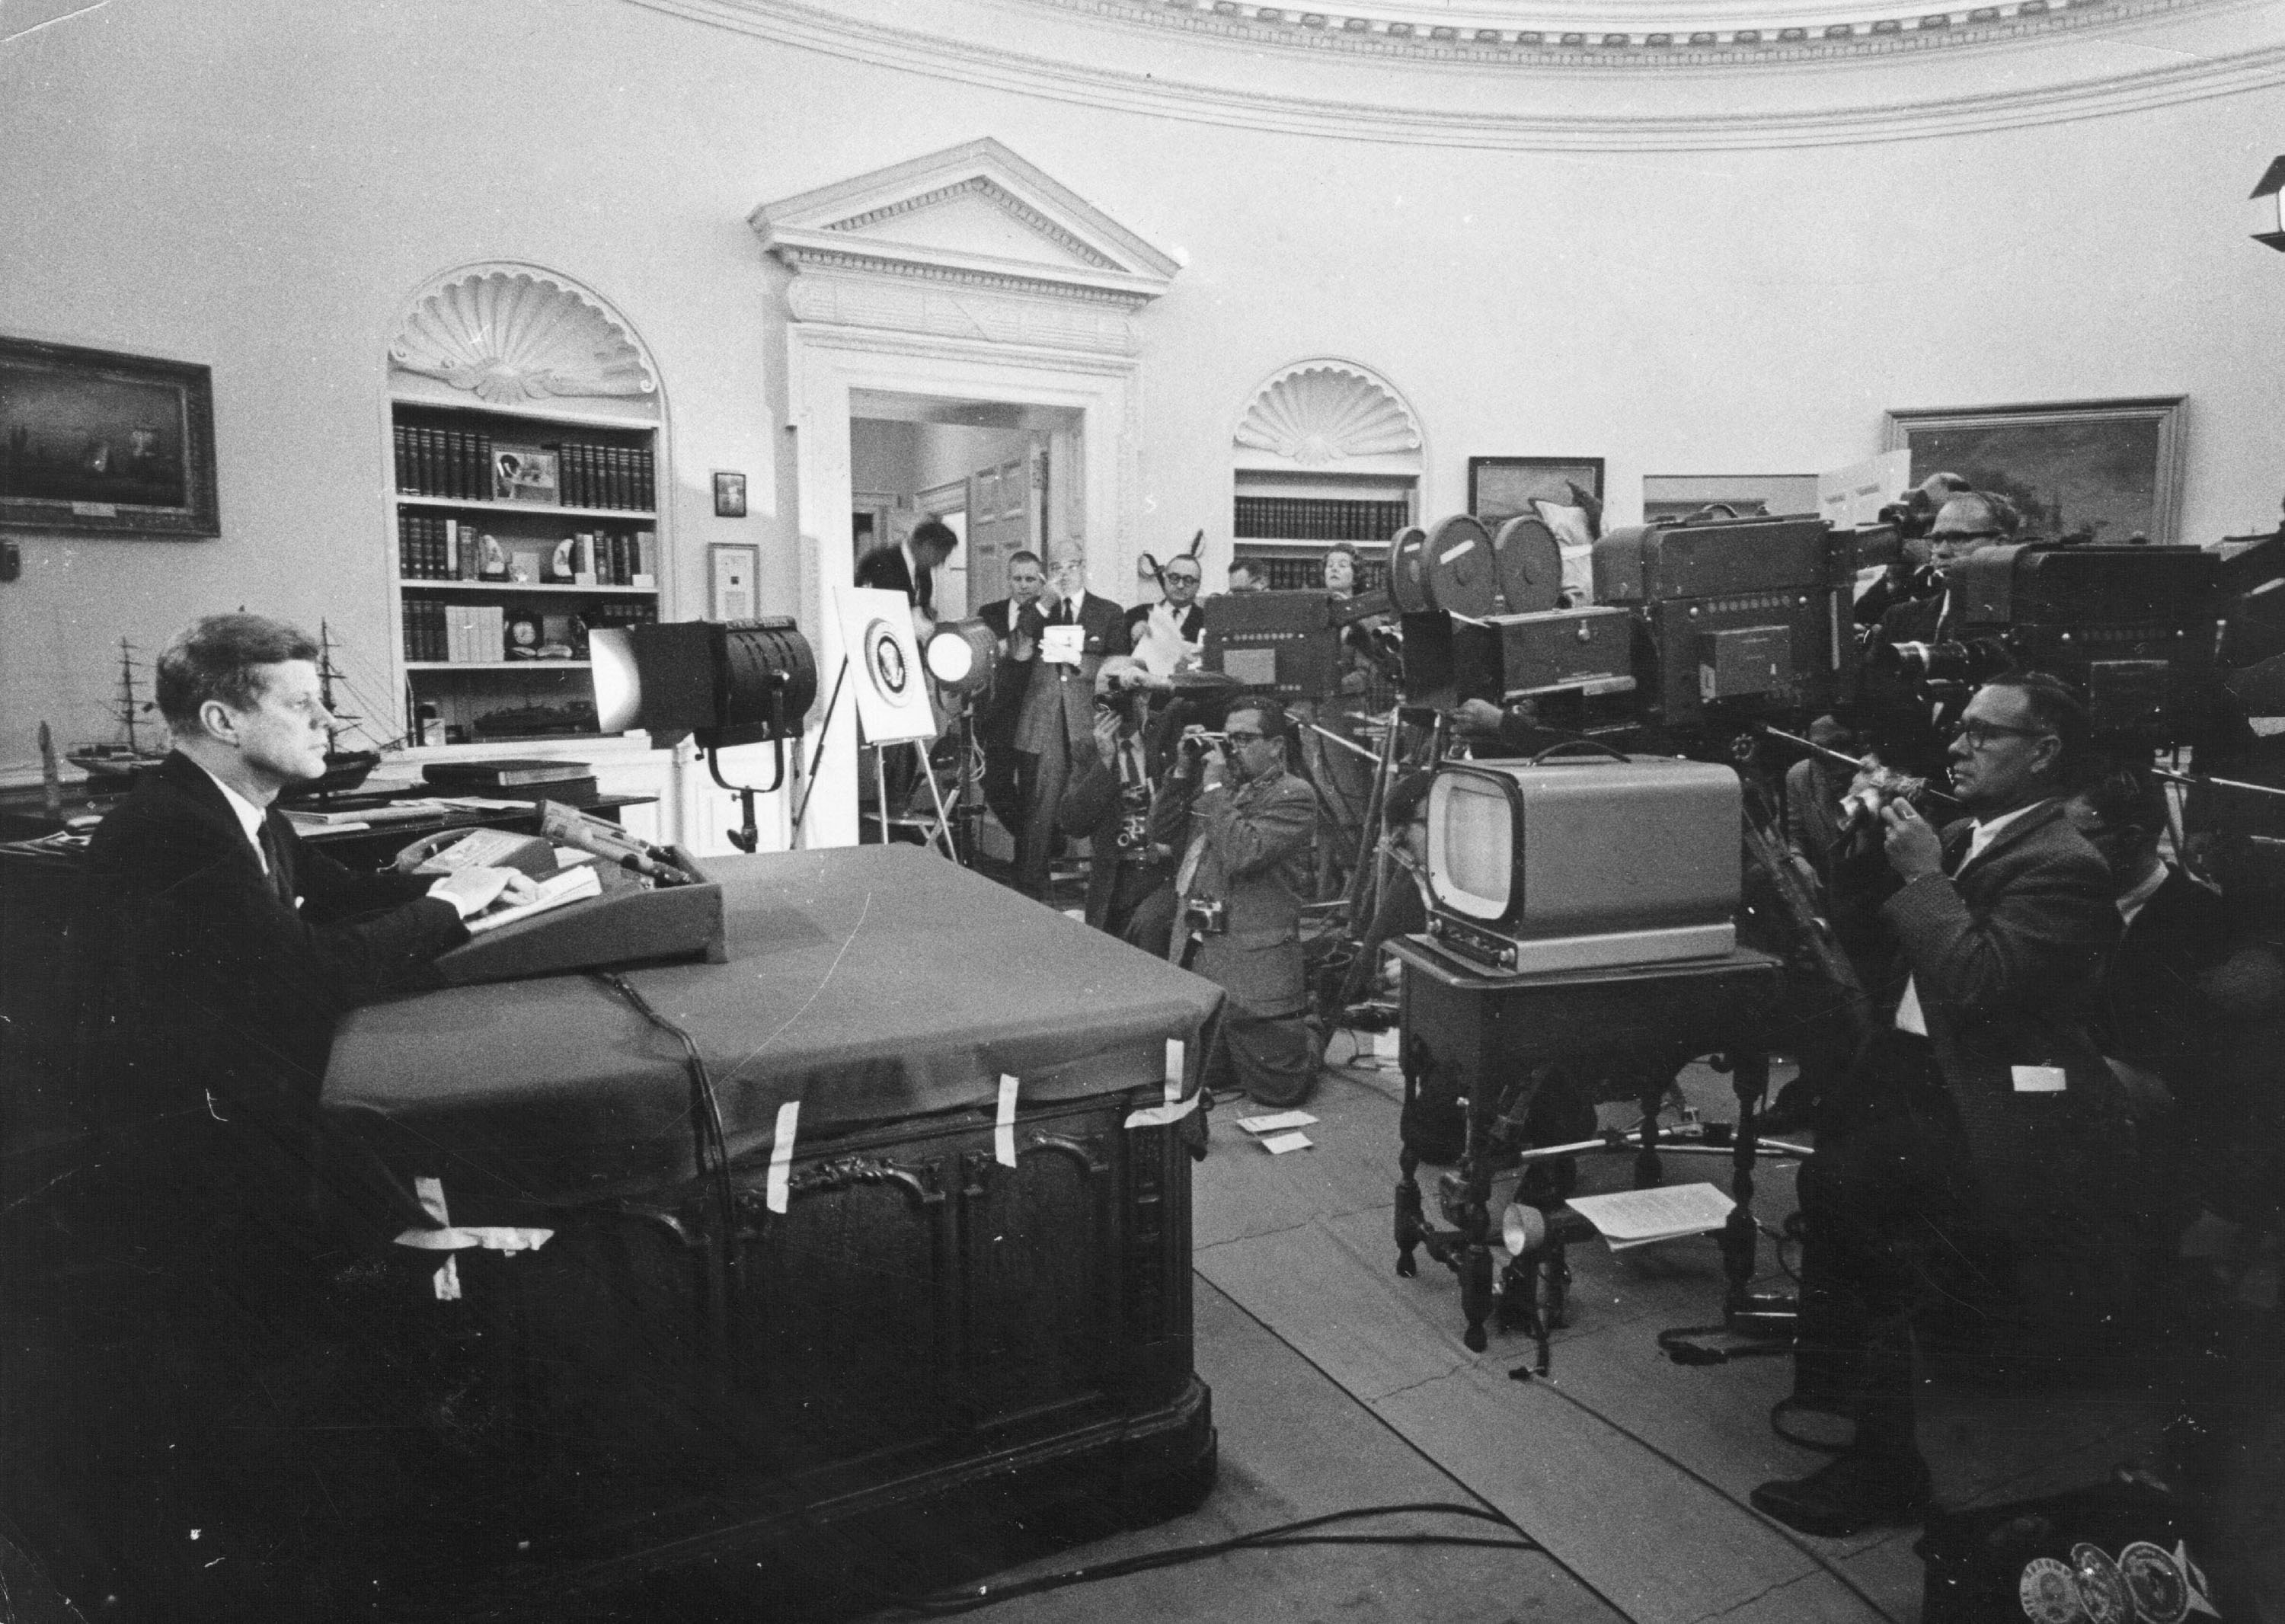 John F. Kennedy In the oval office with TV Cameras